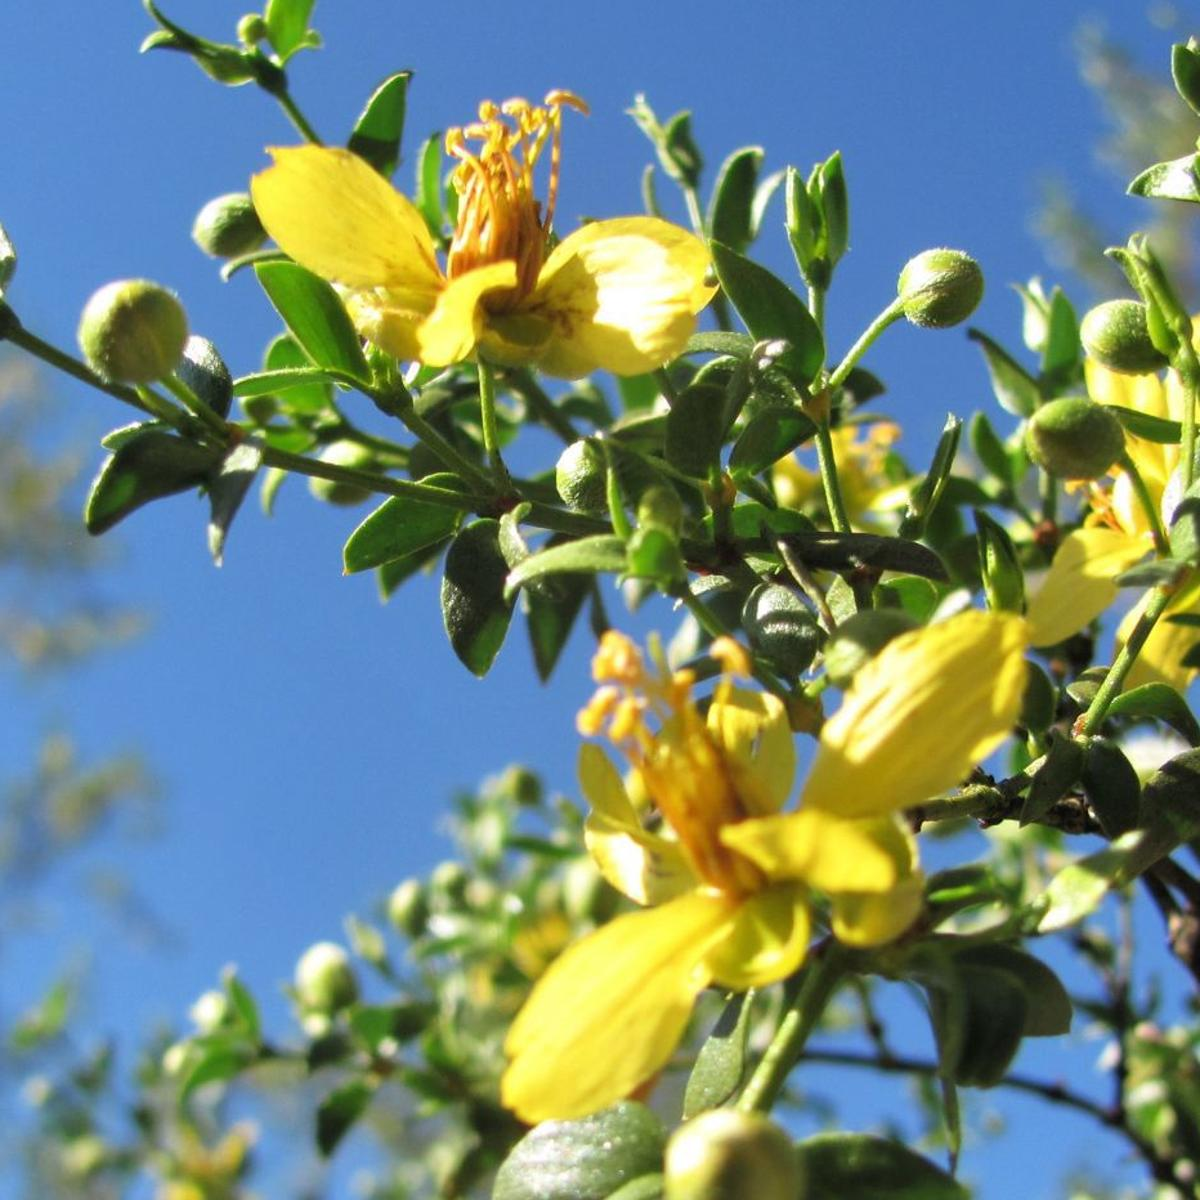 Creosote Bushes Are Old Really Old And Blooming This Spring